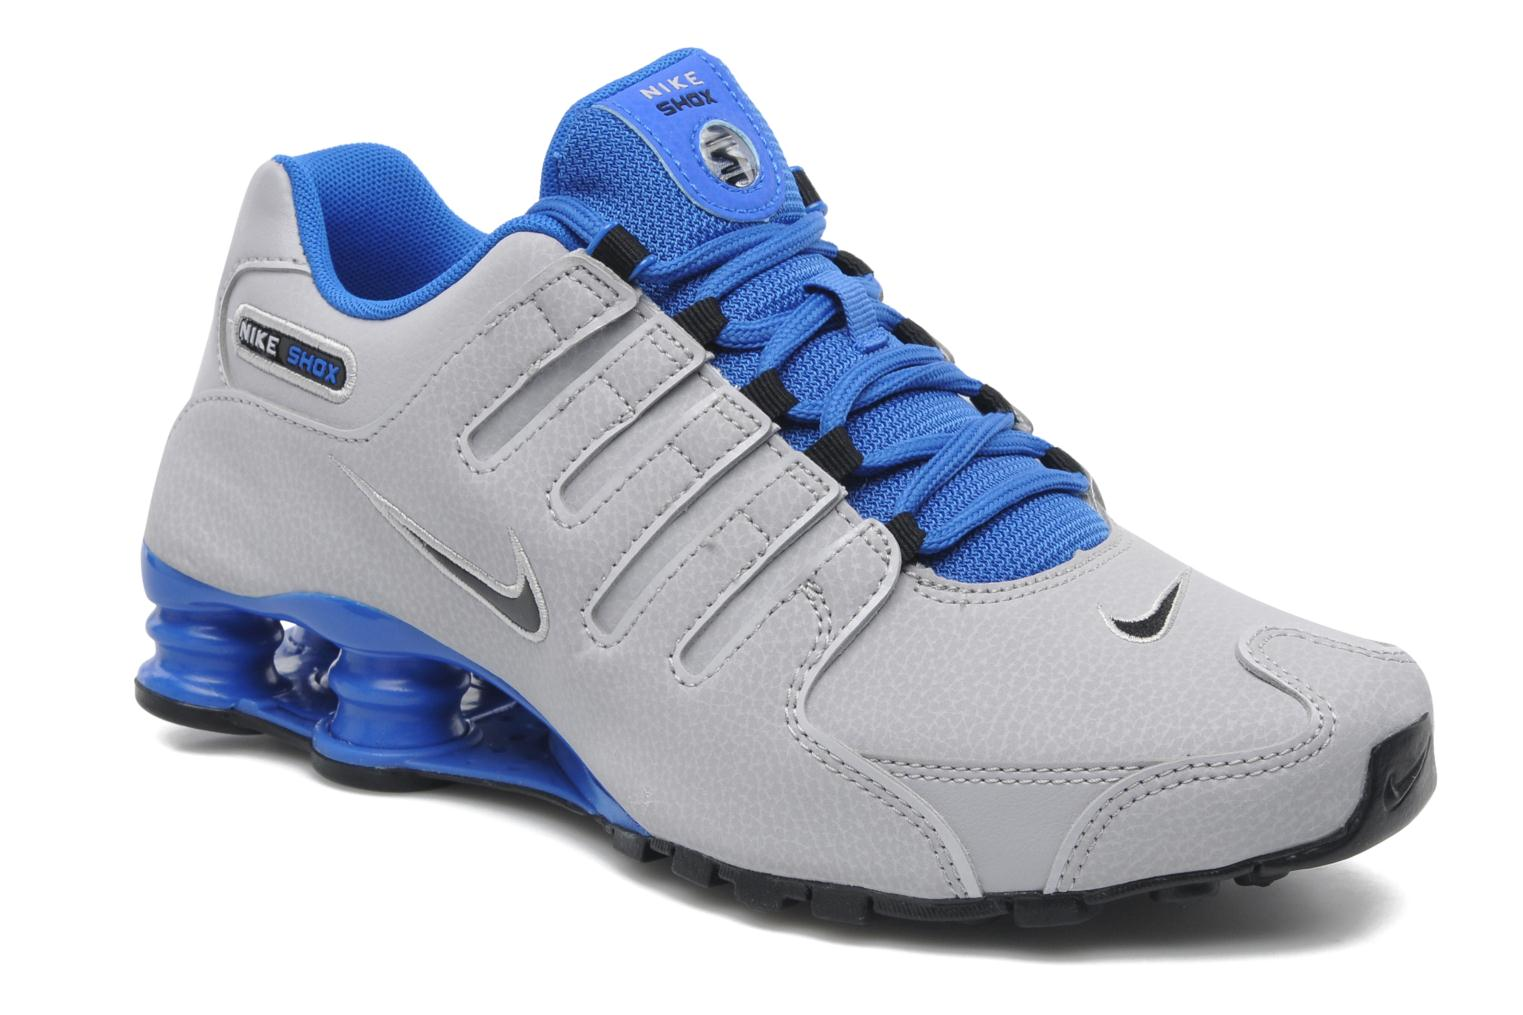 Nike Shox Nz Eu Shoes